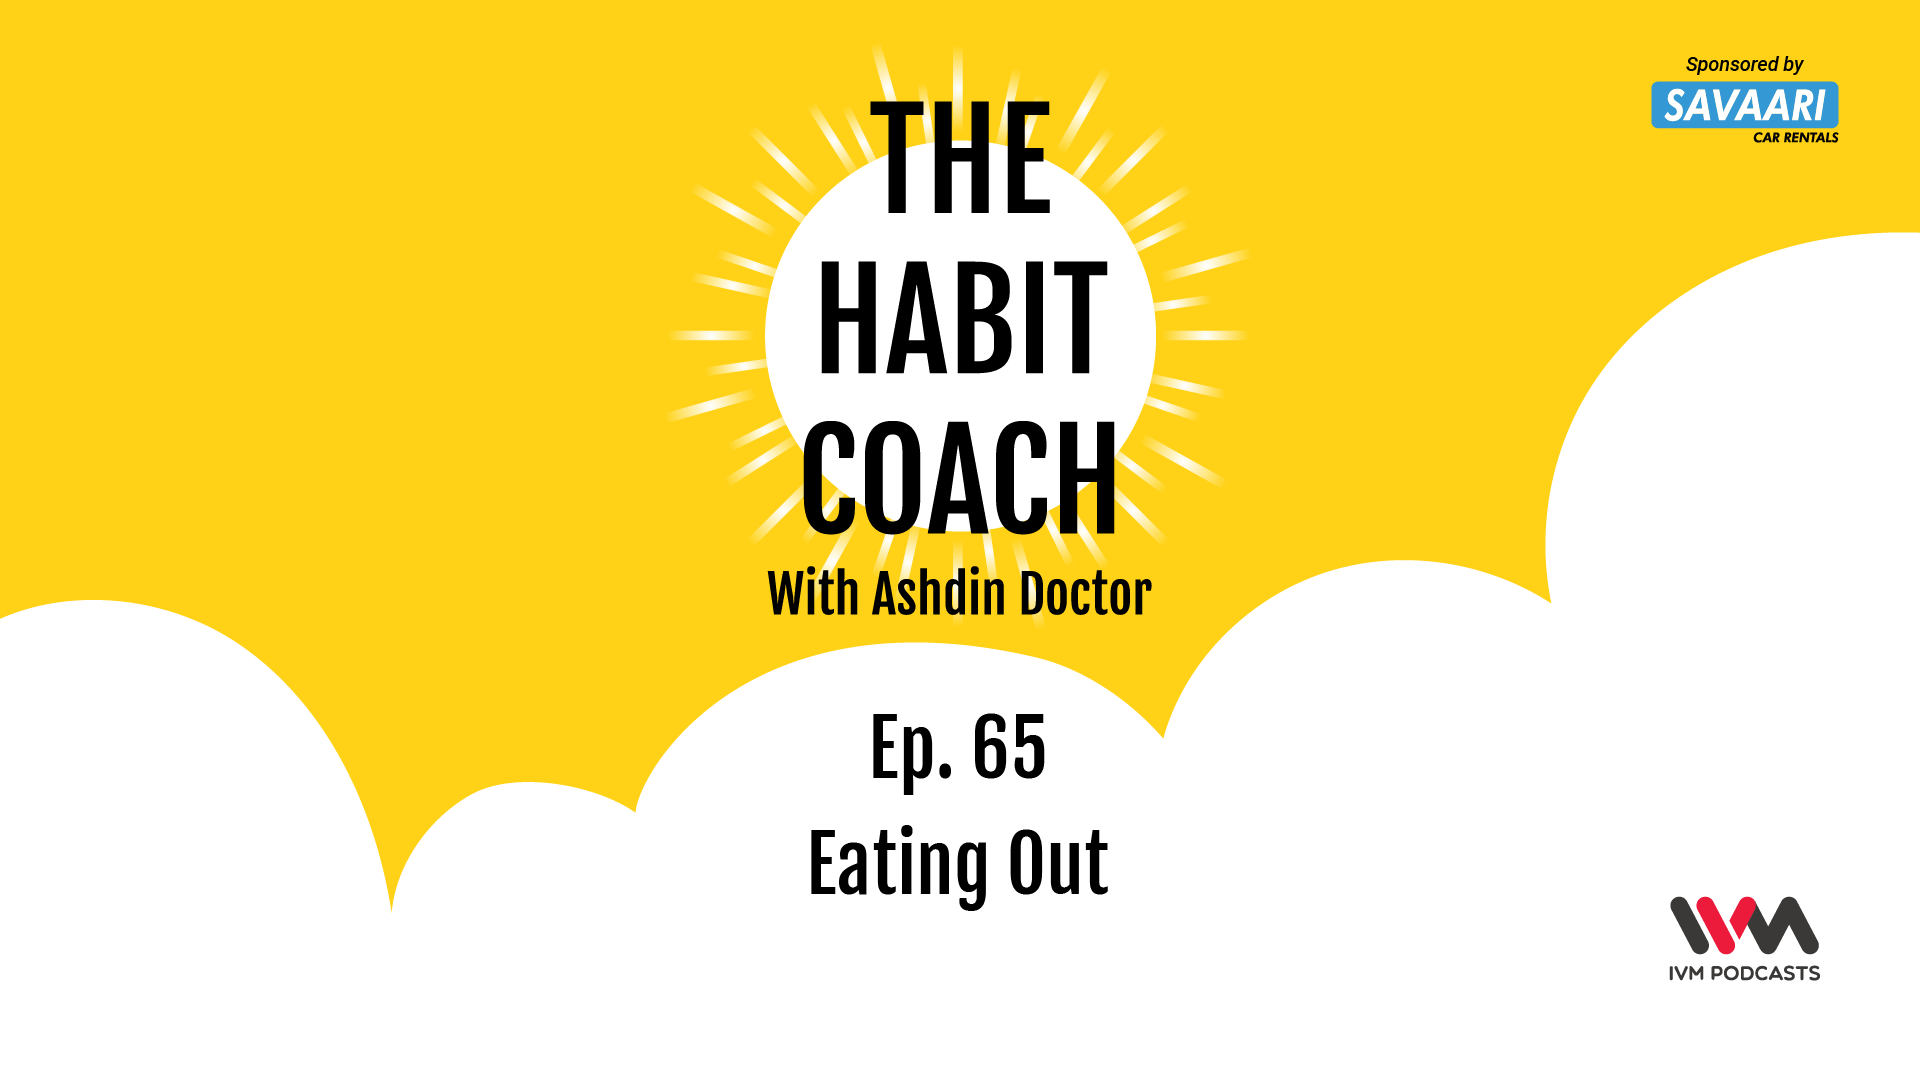 TheHabitCoachEpisode65.png